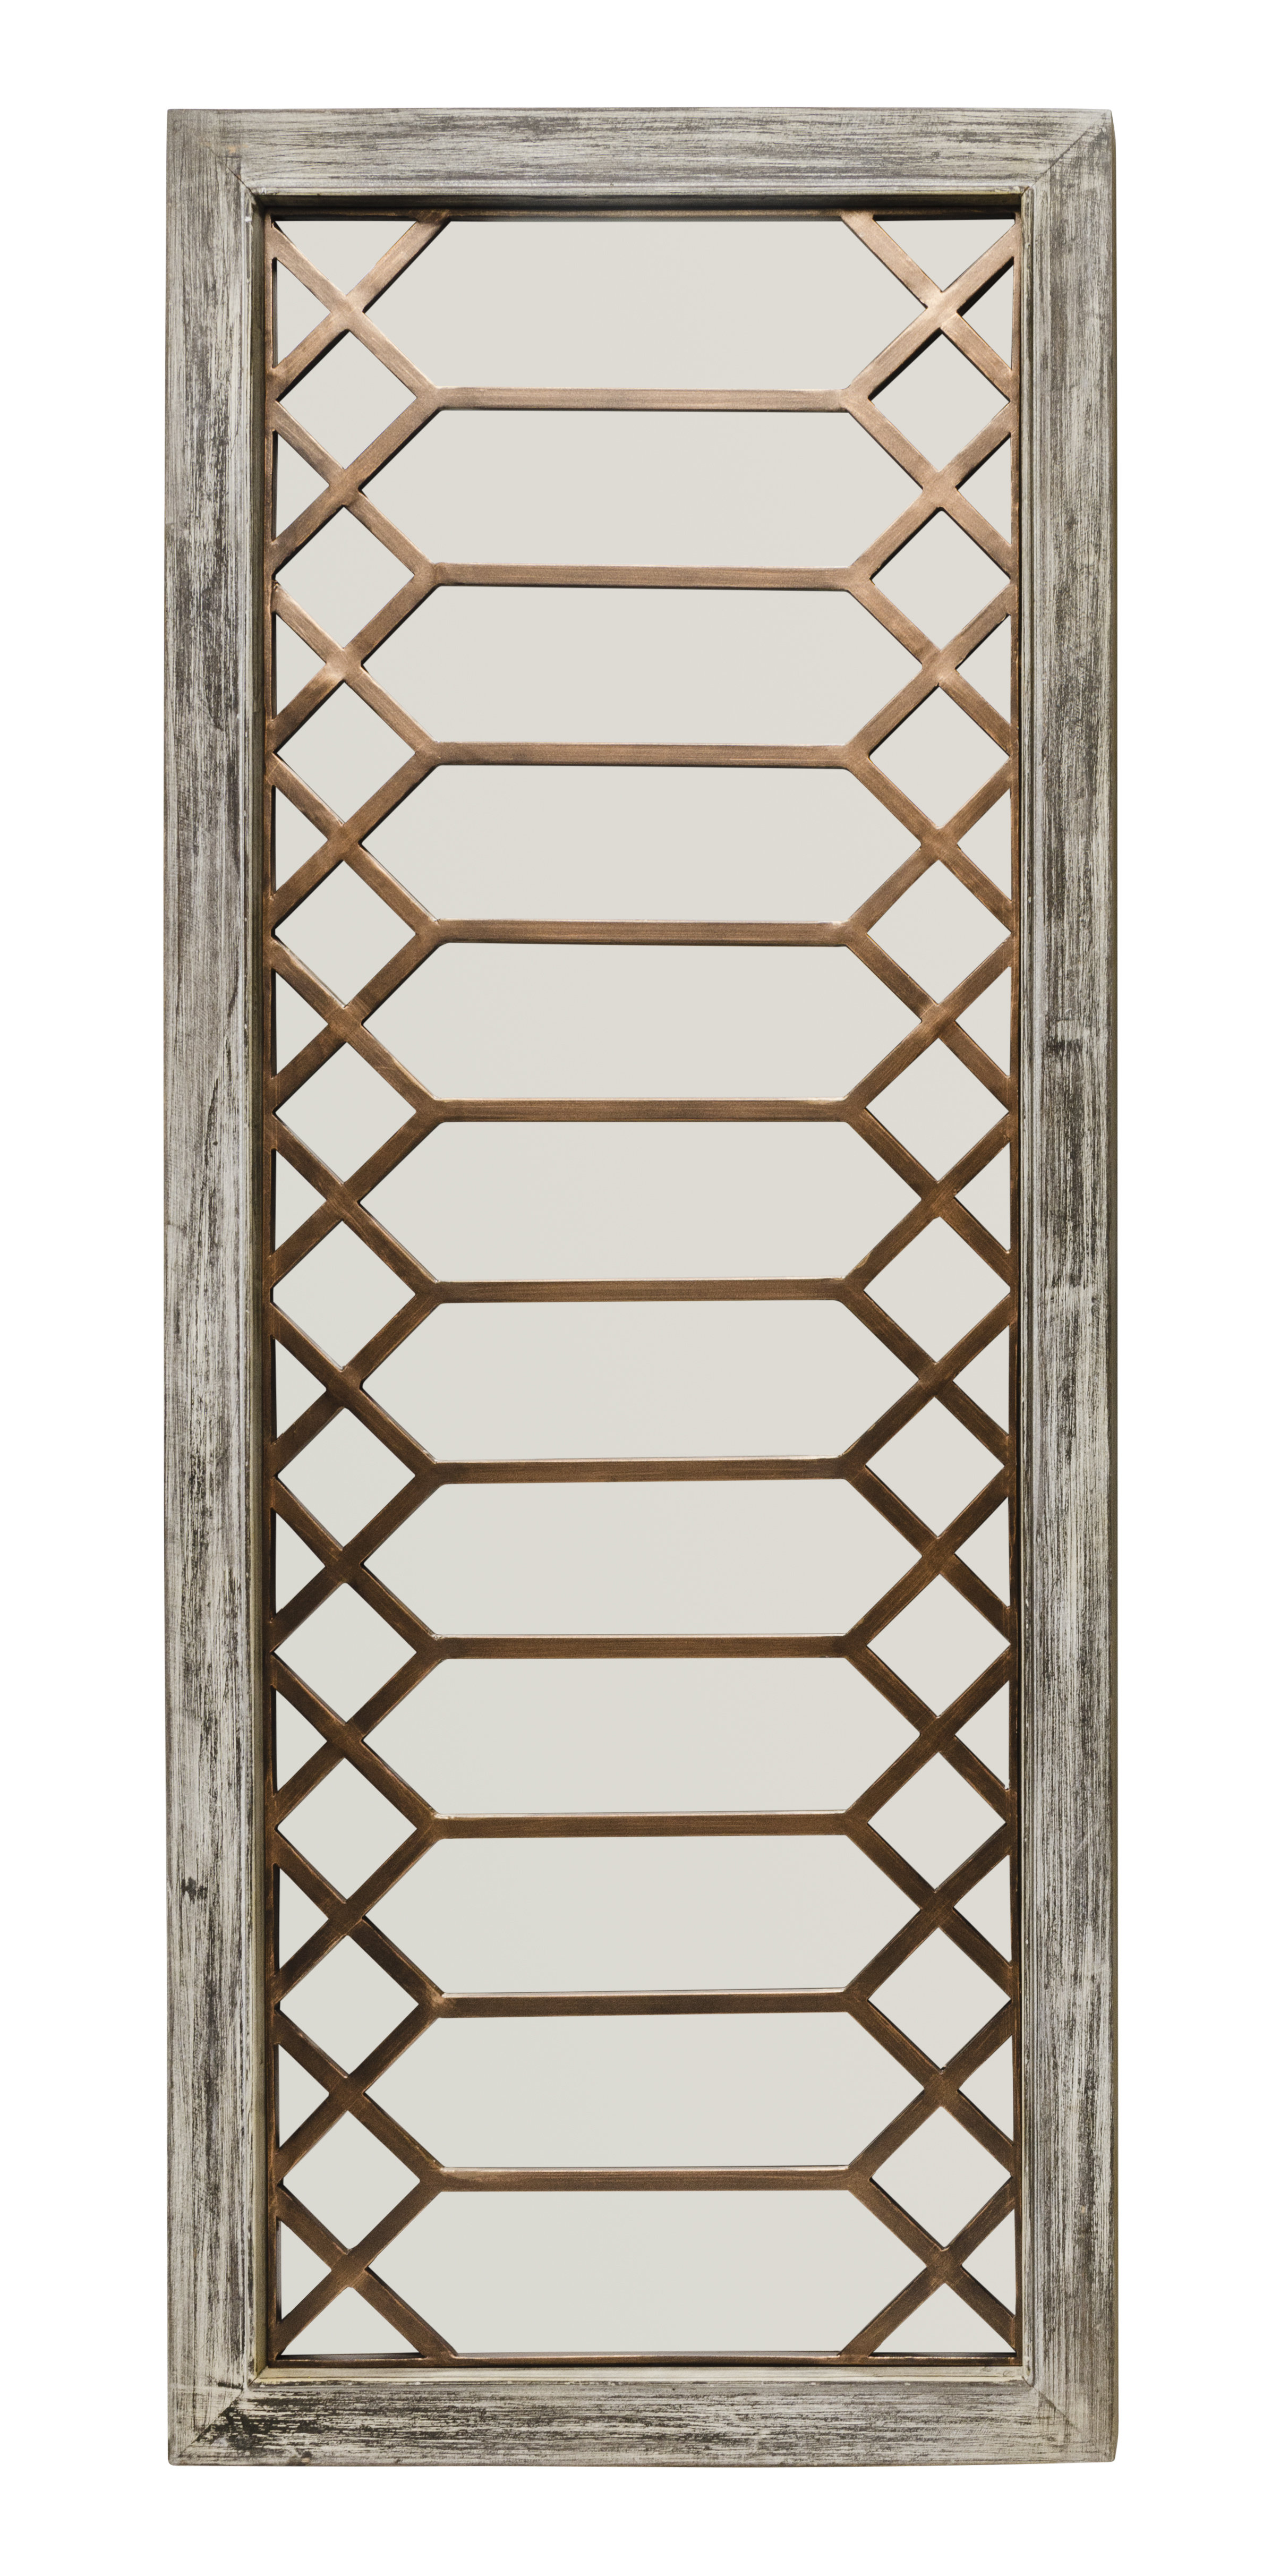 Farmhouse & Rustic Lark Manor Wall & Accent Mirrors | Birch Lane For Stamey Wall Mirrors (Image 7 of 20)